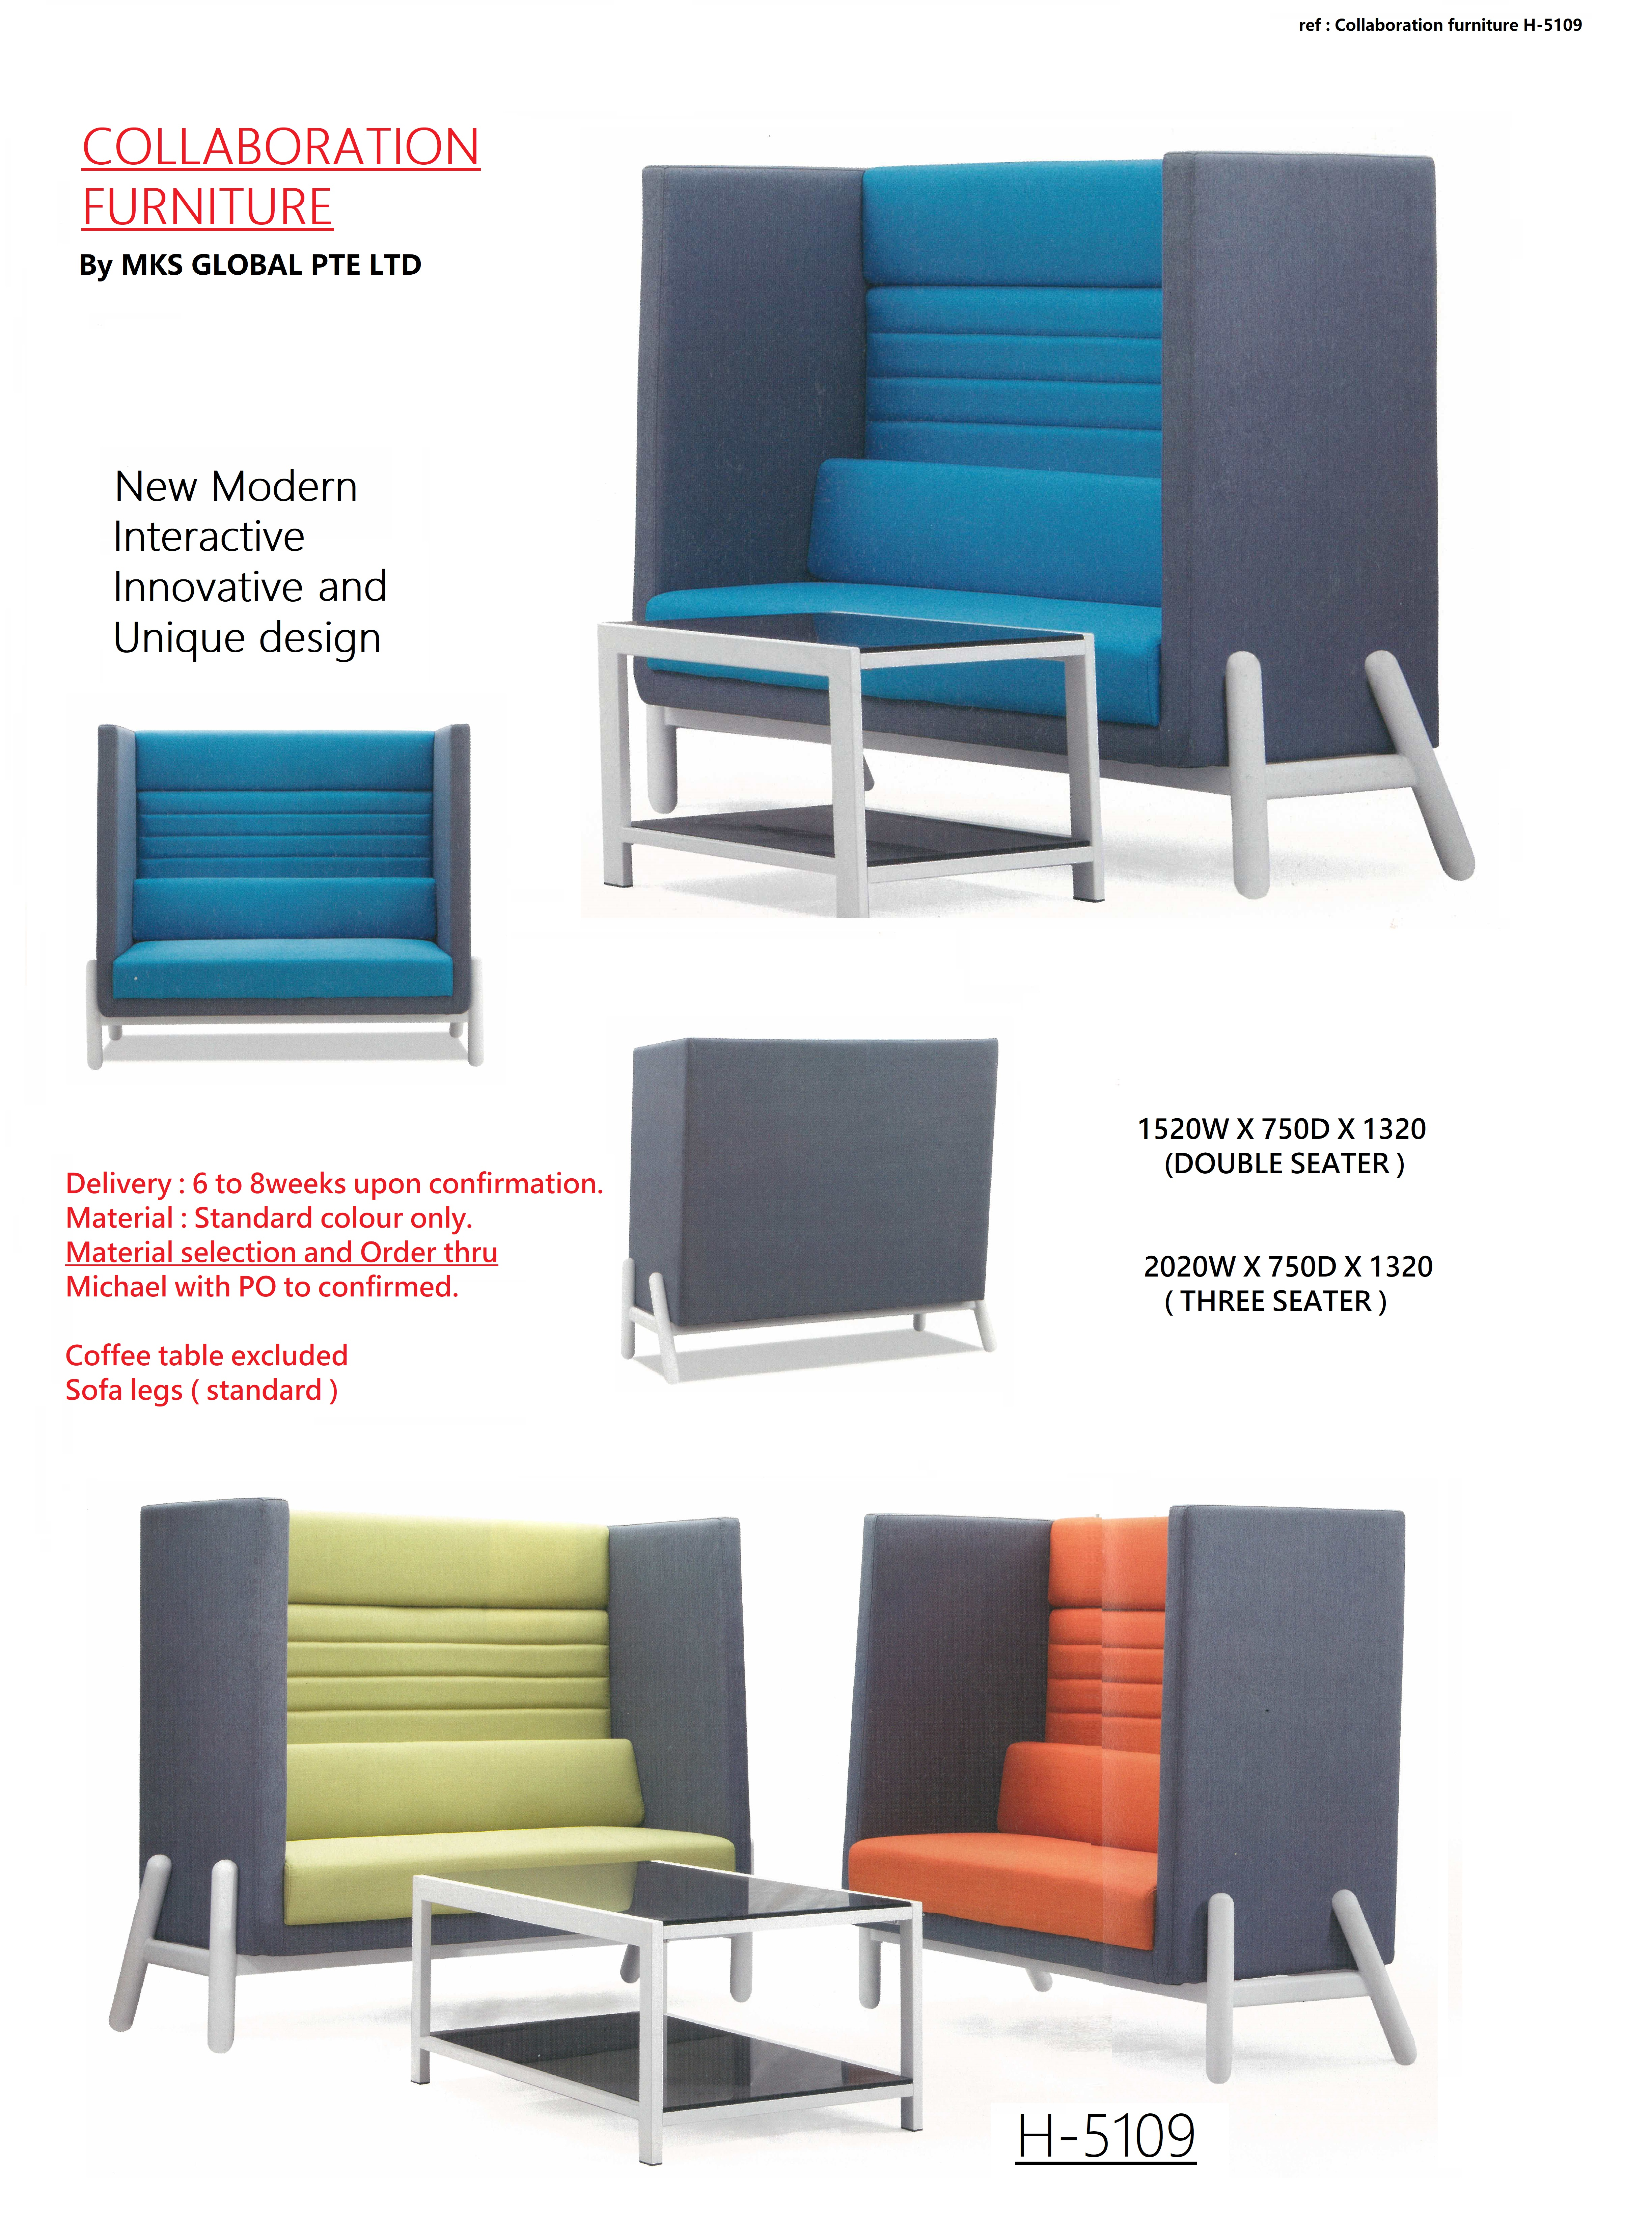 collaboration furniture H-5109A.jpg